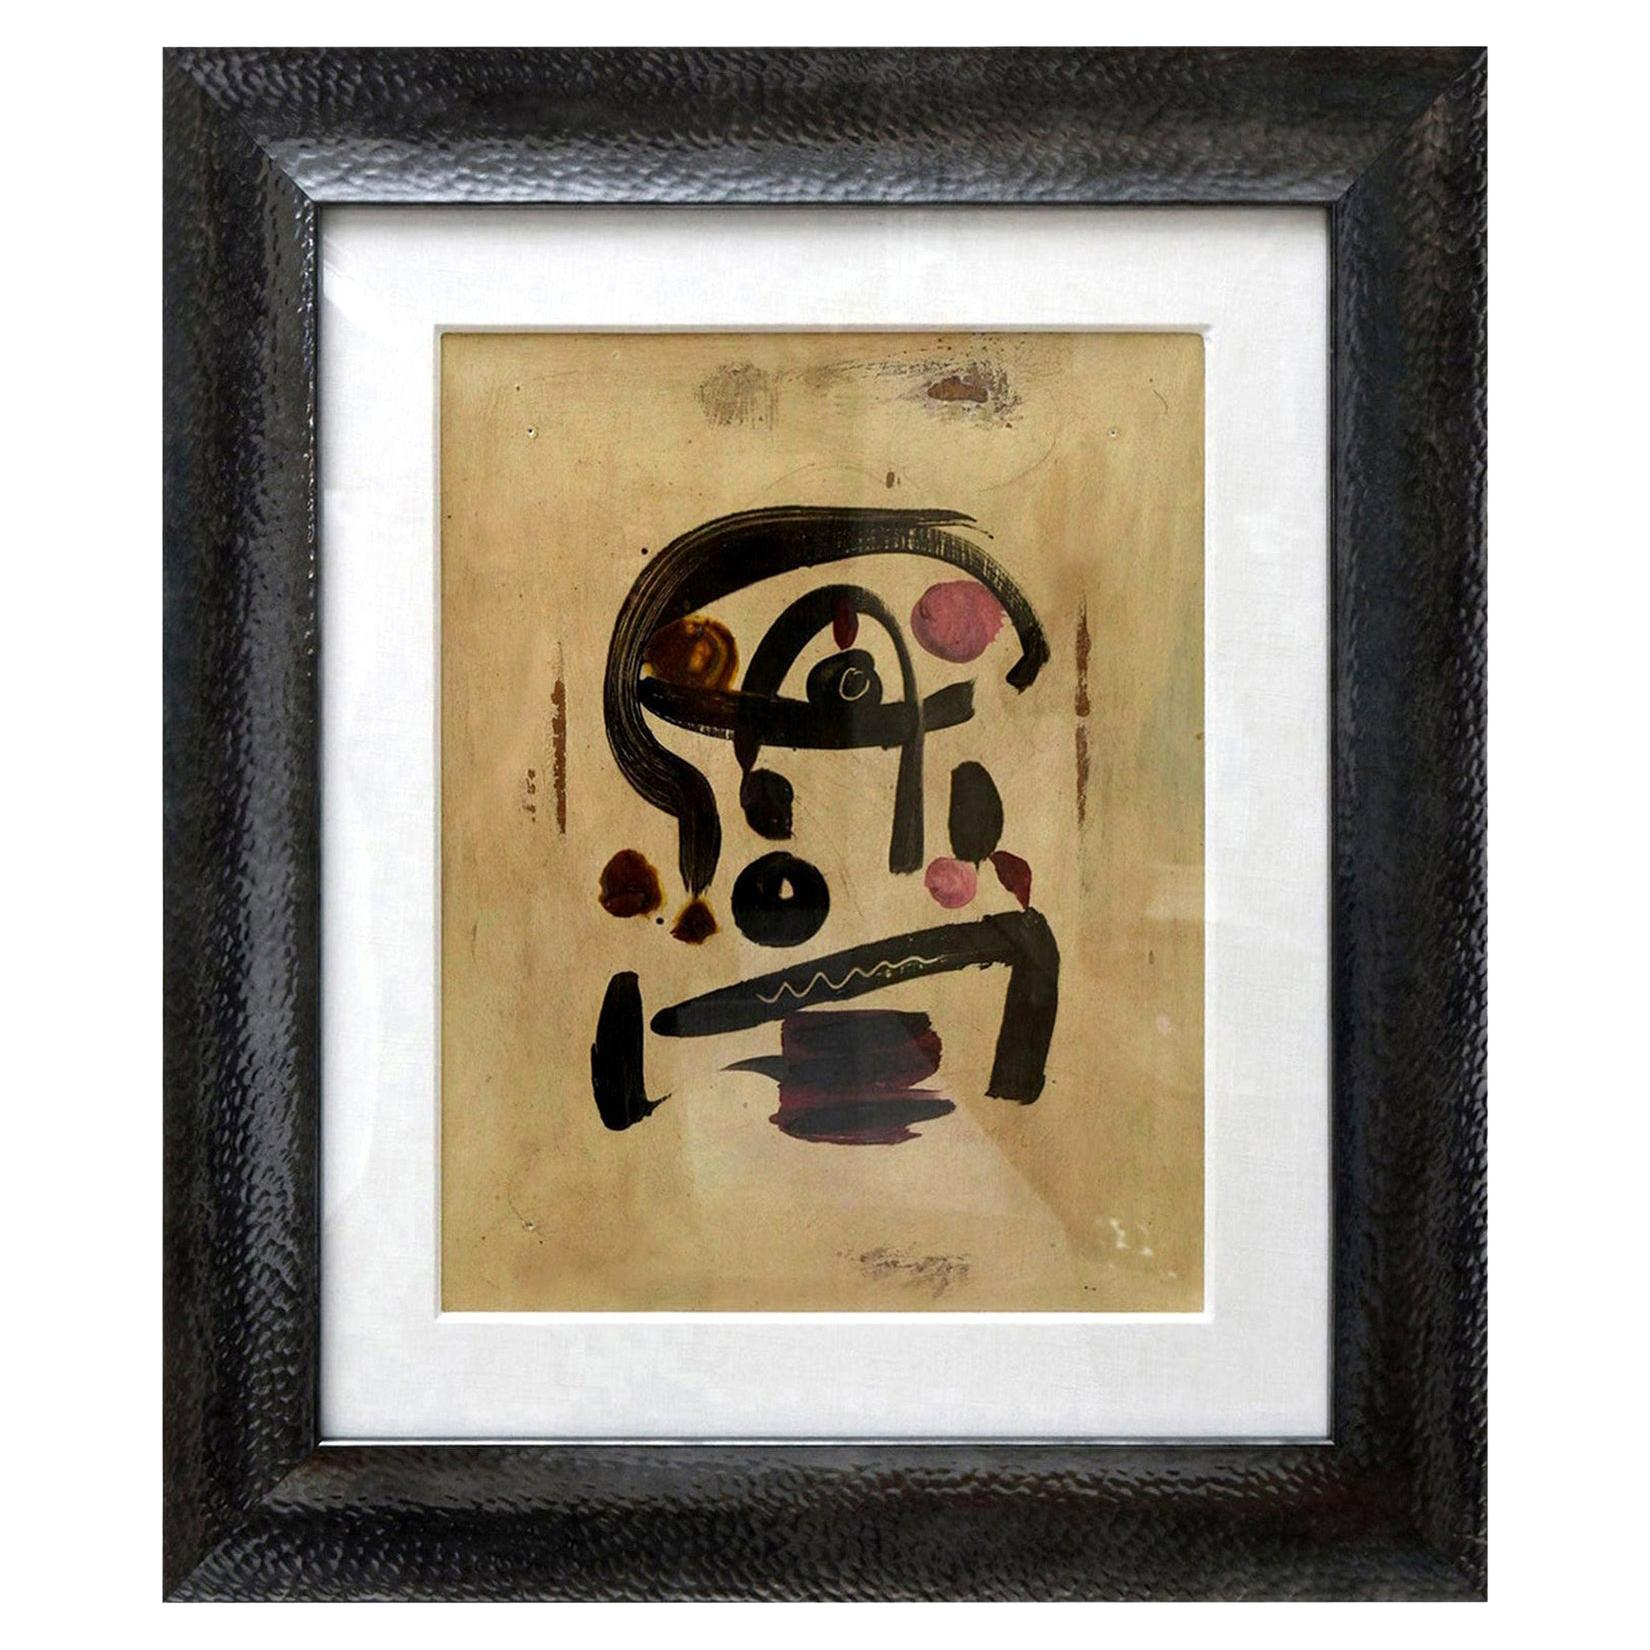 Peter Keil Oil on Board Abstract Painting Custom Framed Signed, 1960s